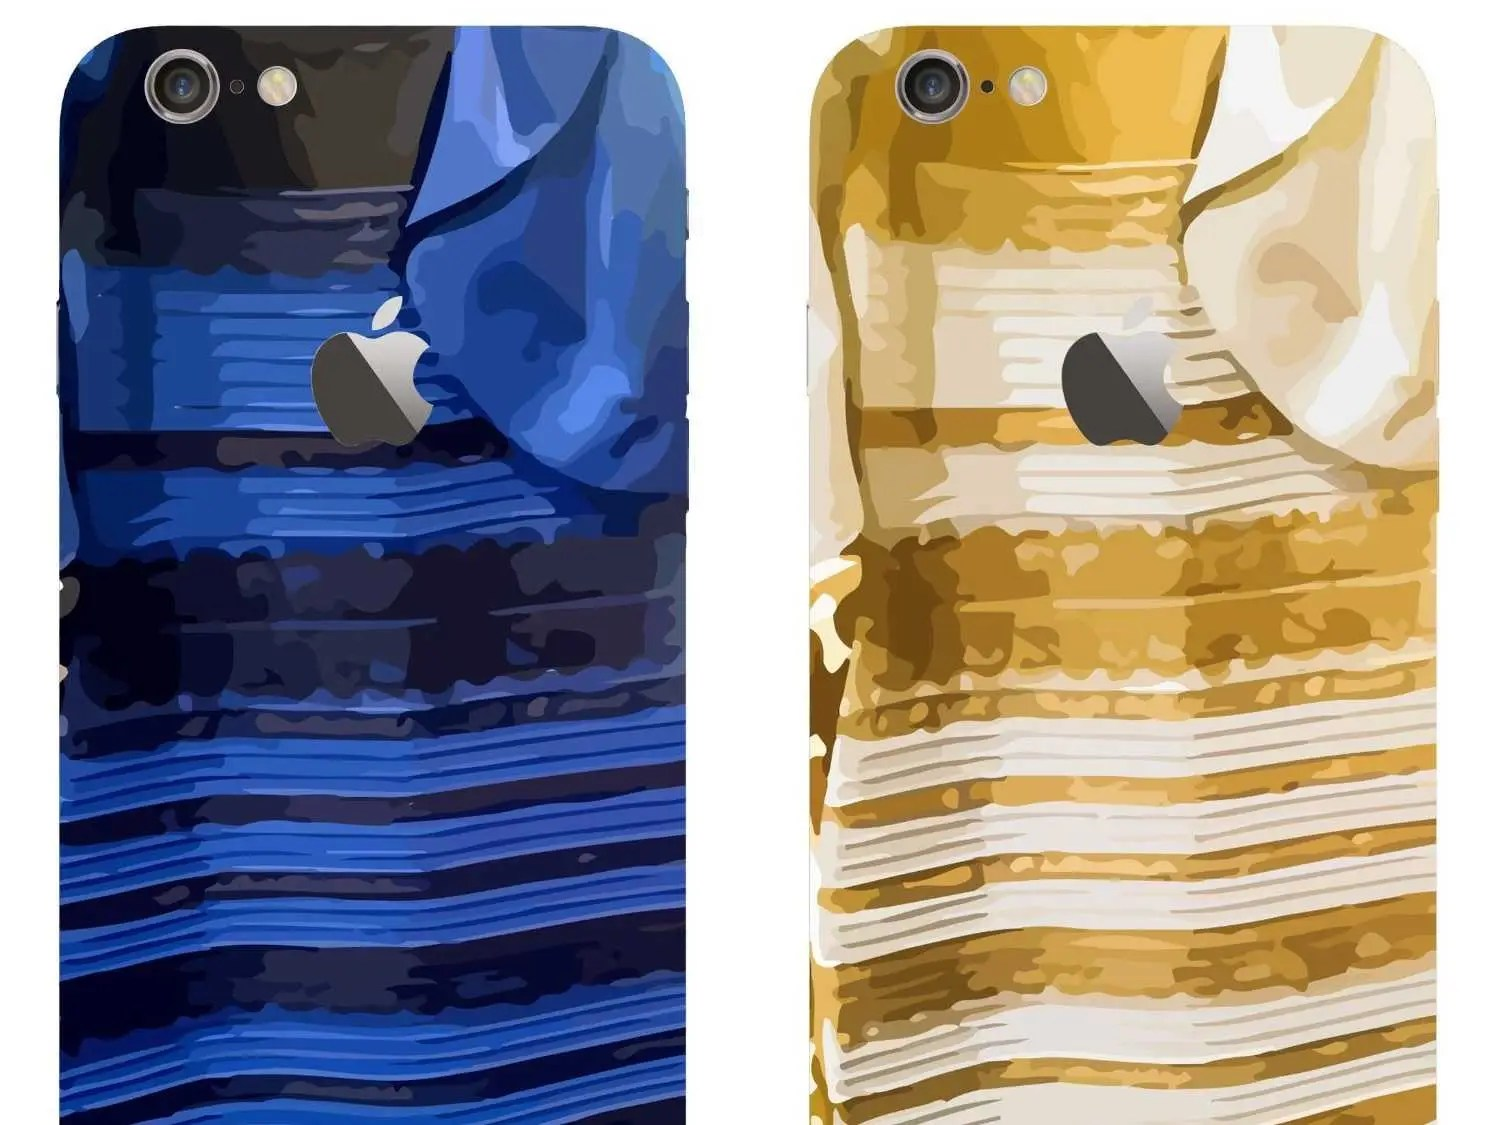 Illusion Wallpaper Iphone The Dress Iphone Case Business Insider